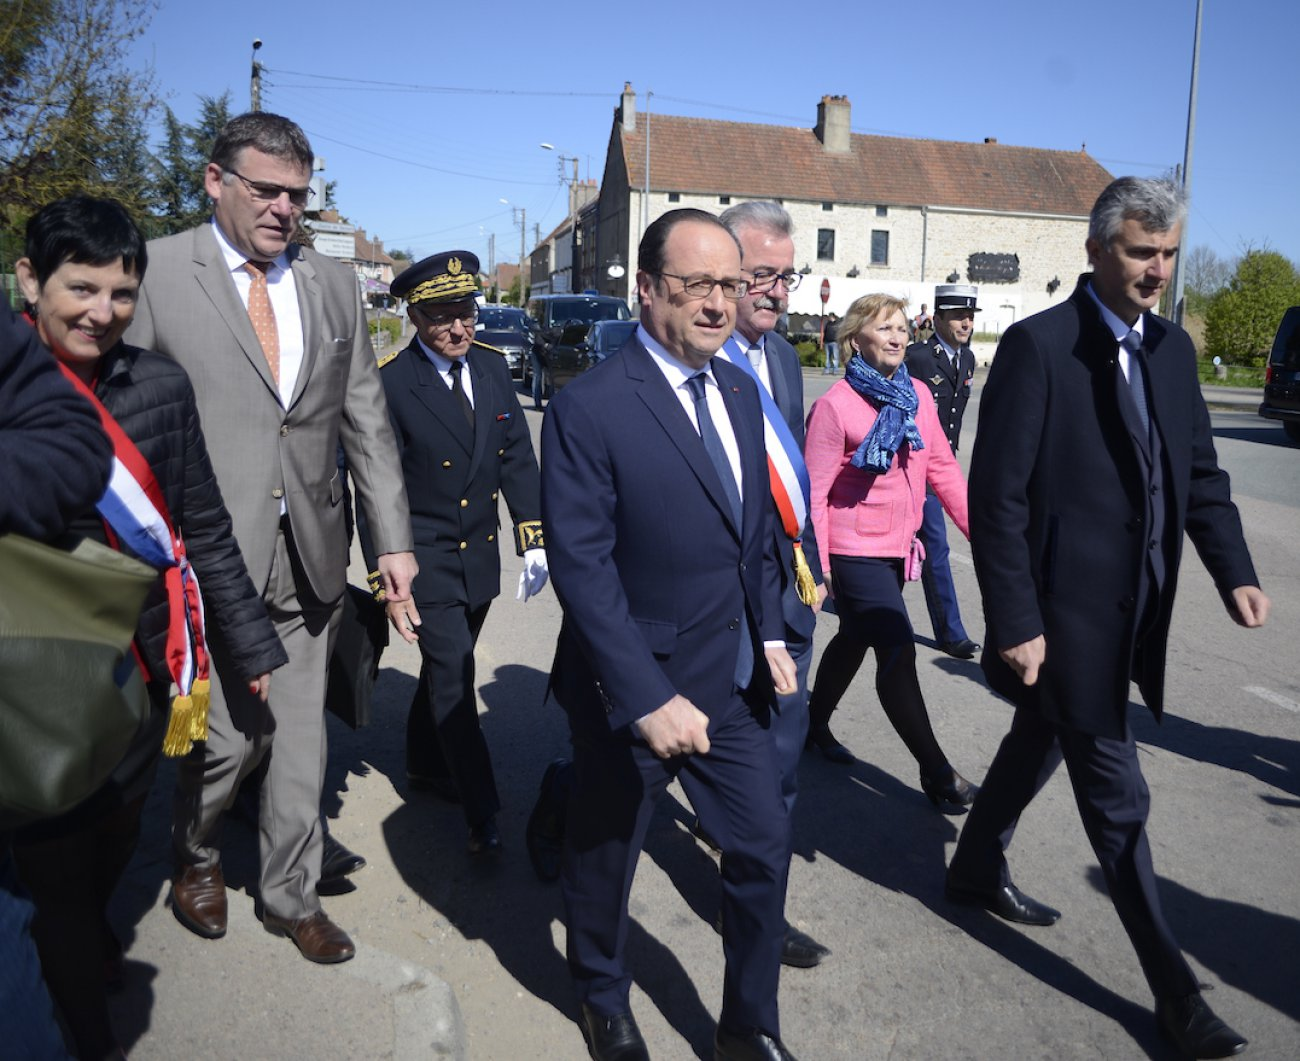 montchanin-la-visite-de-francois-hollande-en-photos-76822.jpg